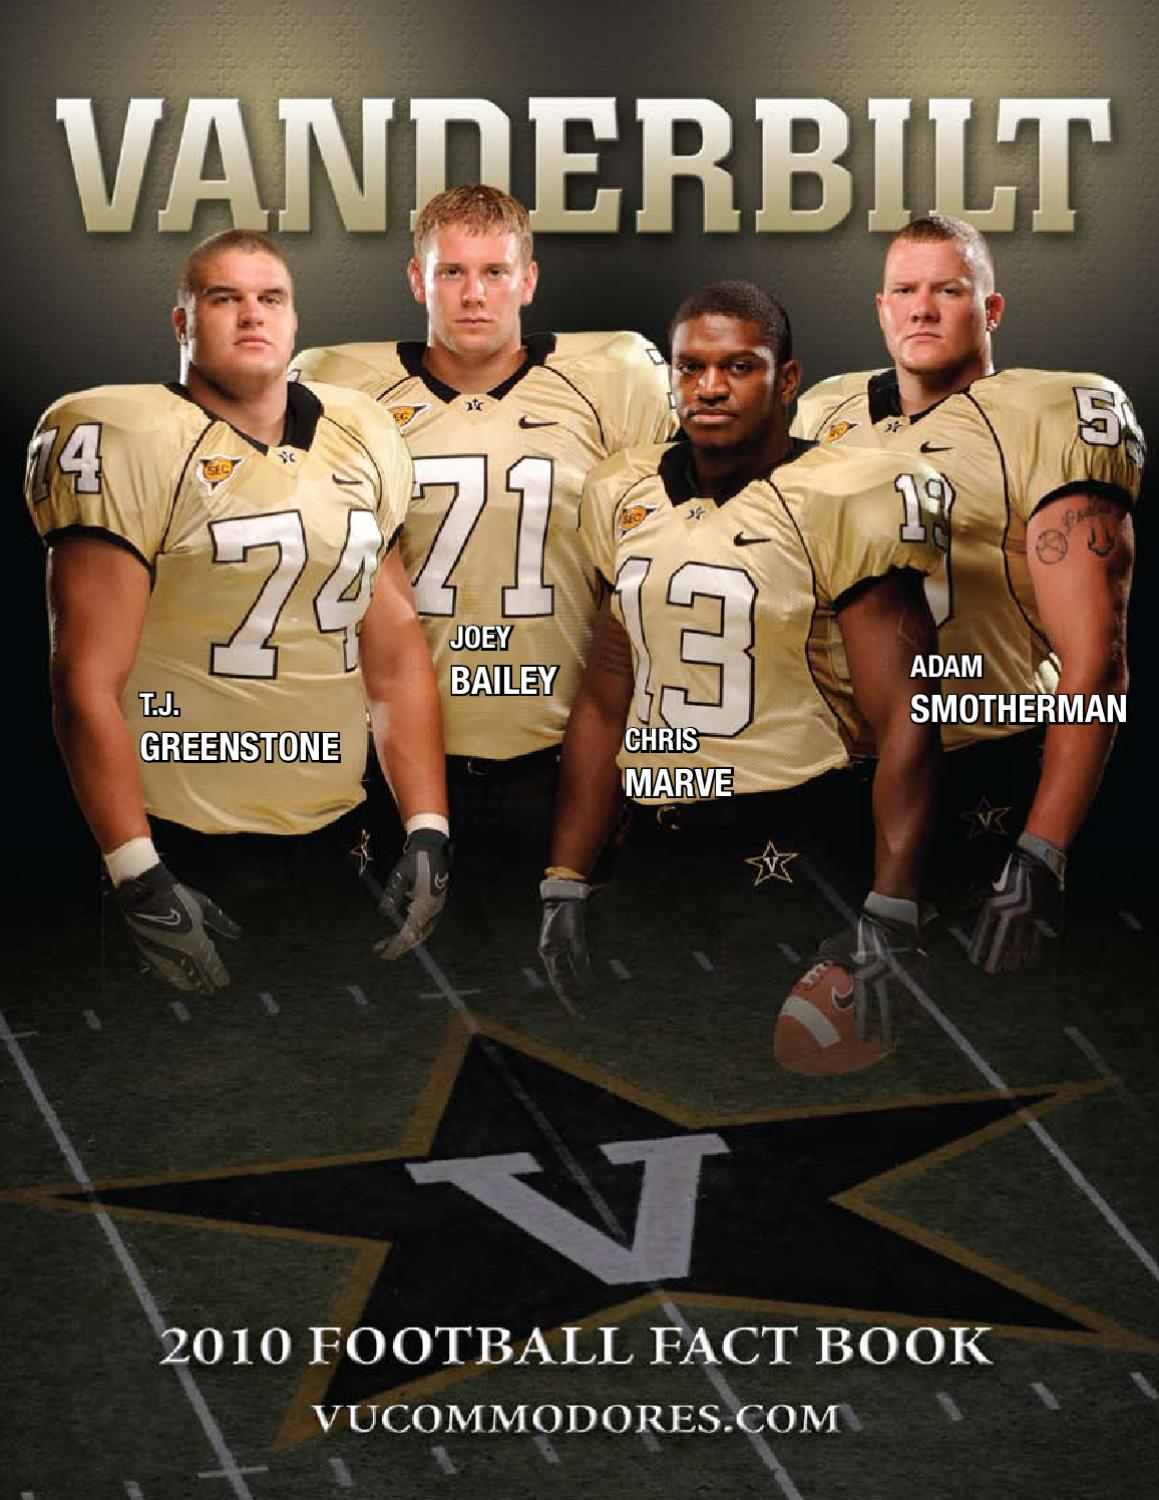 2010 Vanderbilt Football Fact Book by Vanderbilt Commodores - issuu c6cb0aeb0